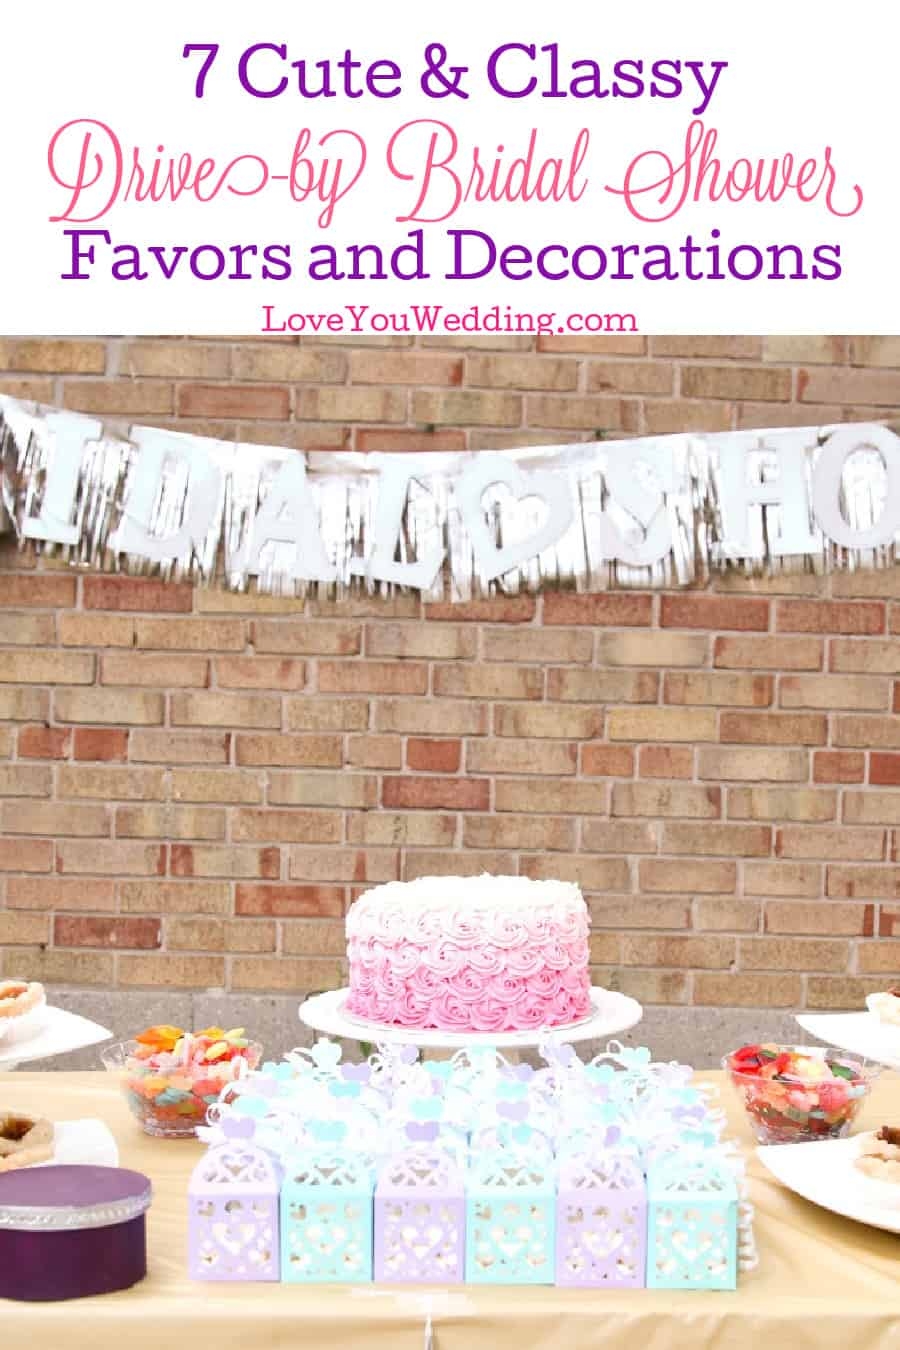 So you're looking for some impressive drive-by bridal shower favors and decor ideas? Wait until you see these cute ideas! Take a look!